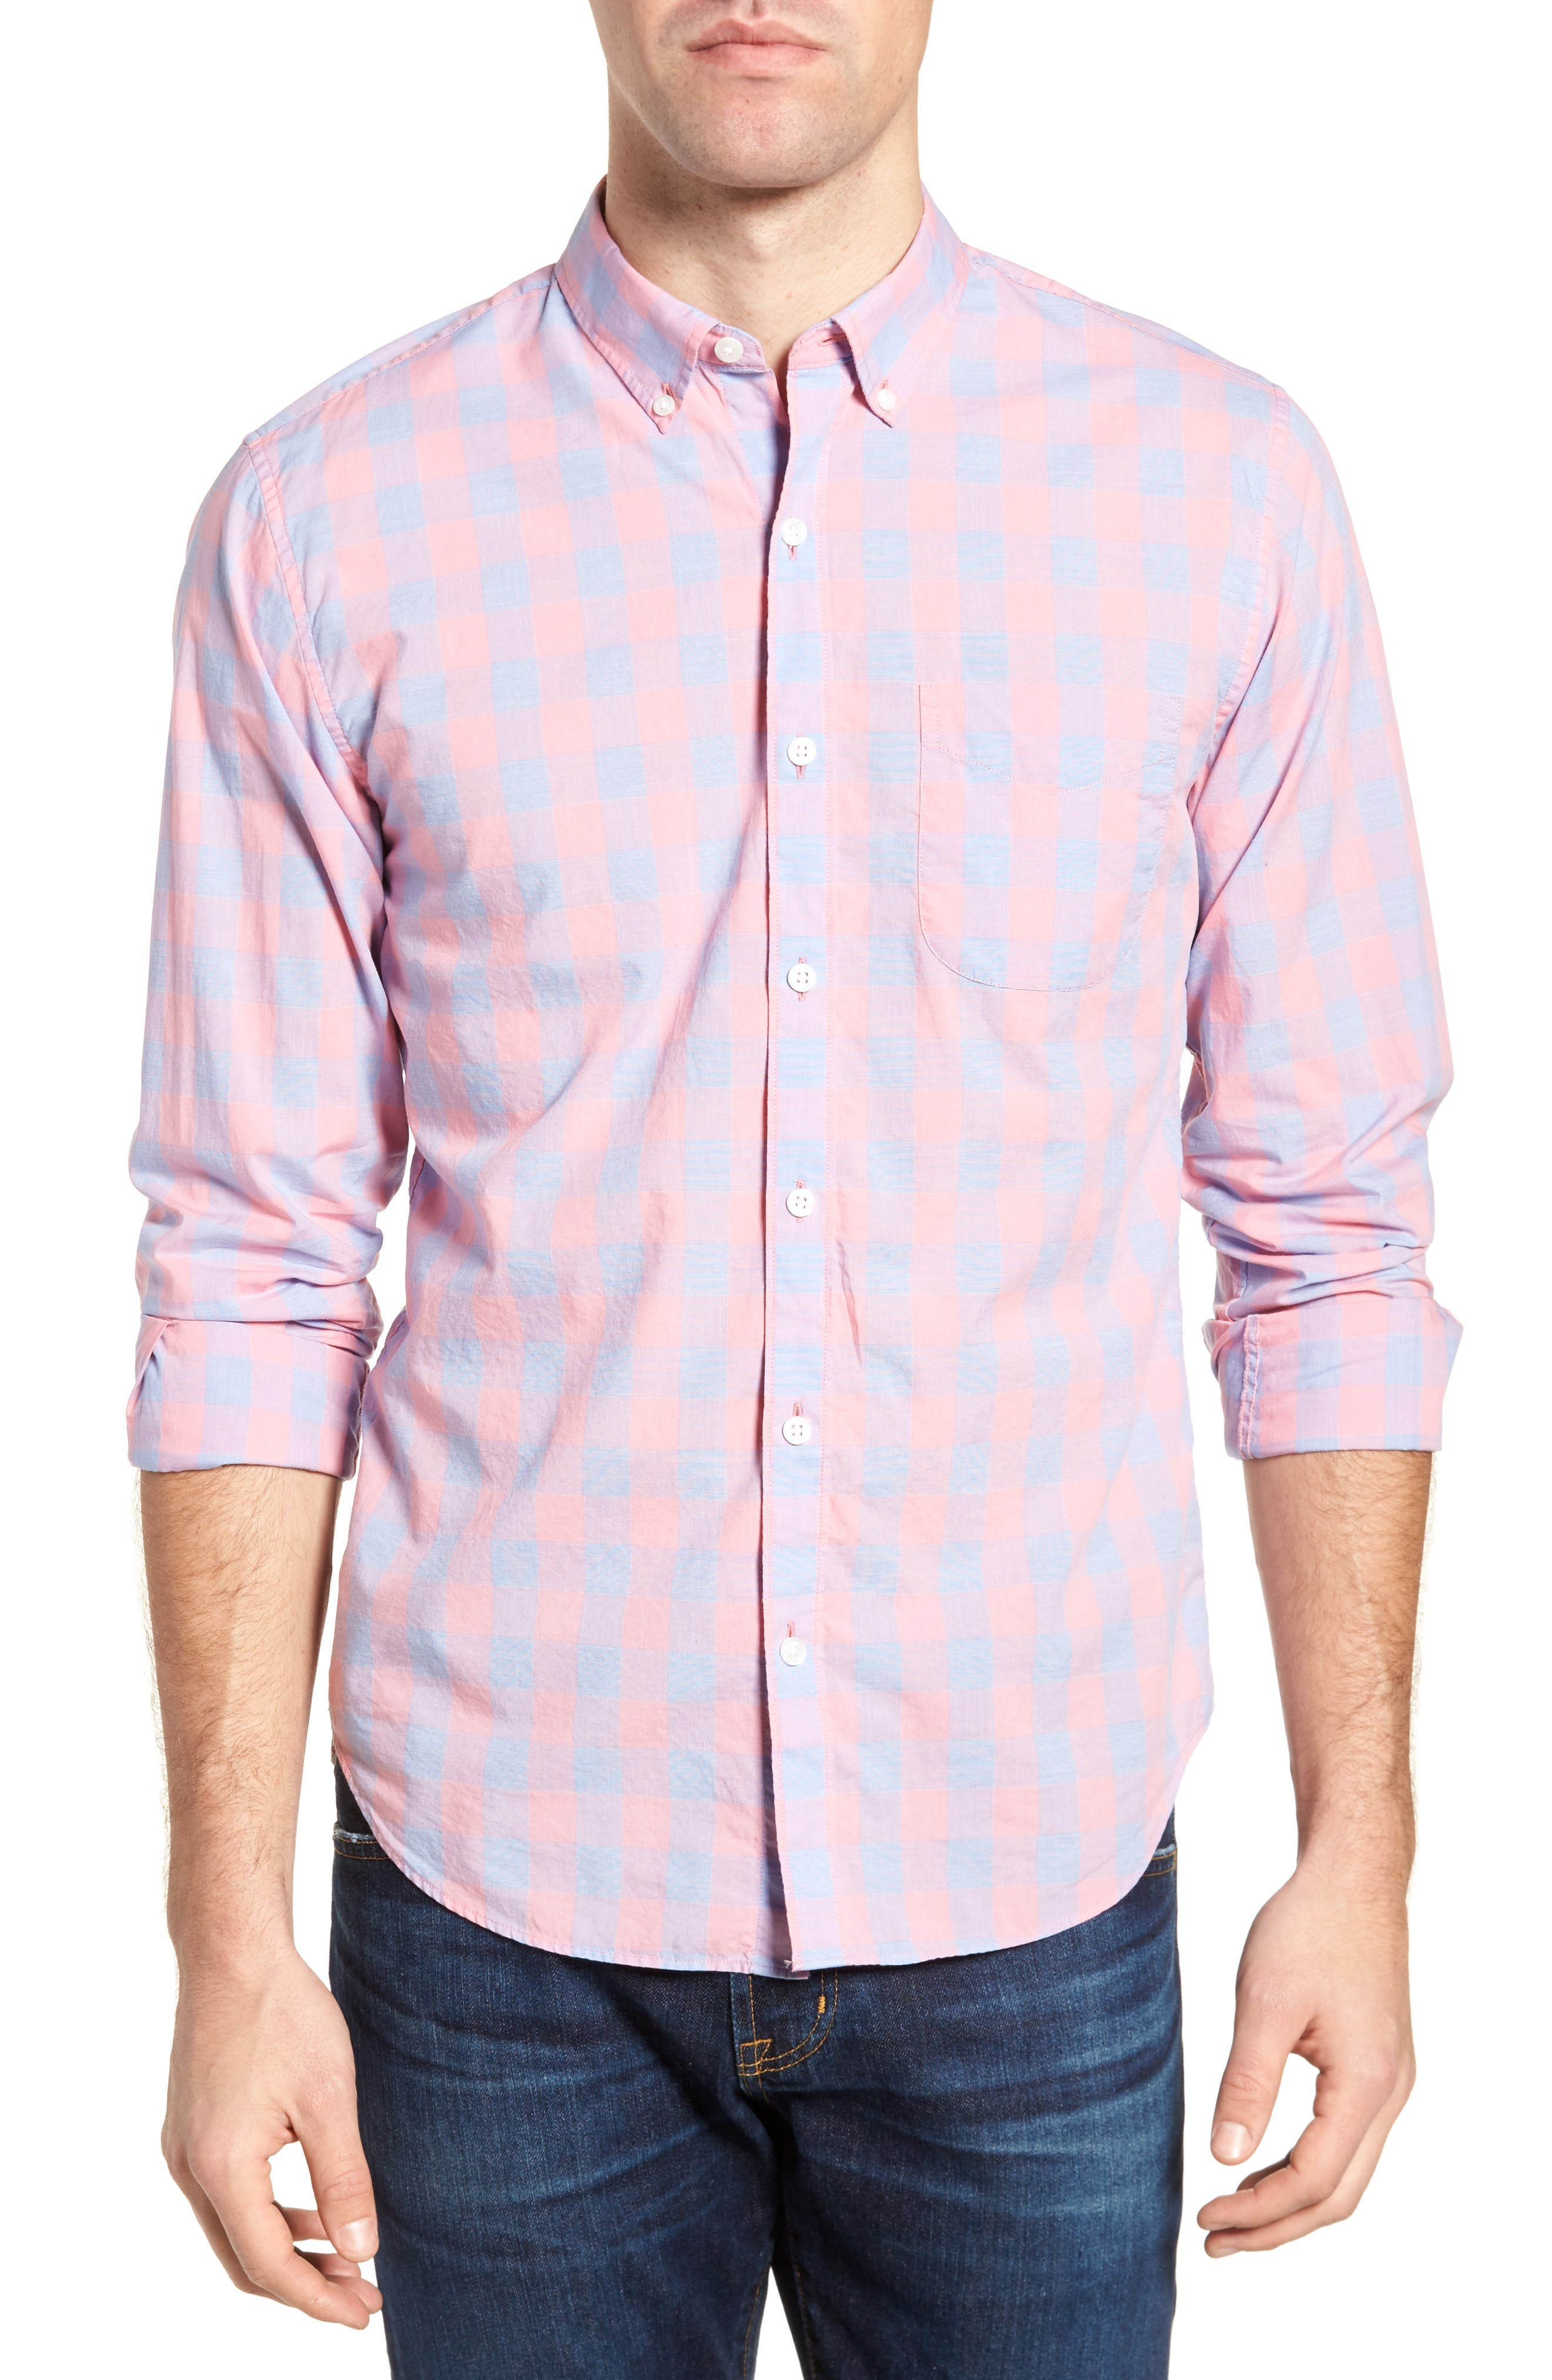 Alternate Image 1 Selected - Bonobos Summerweight Slim Fit Gingham Sport Shirt